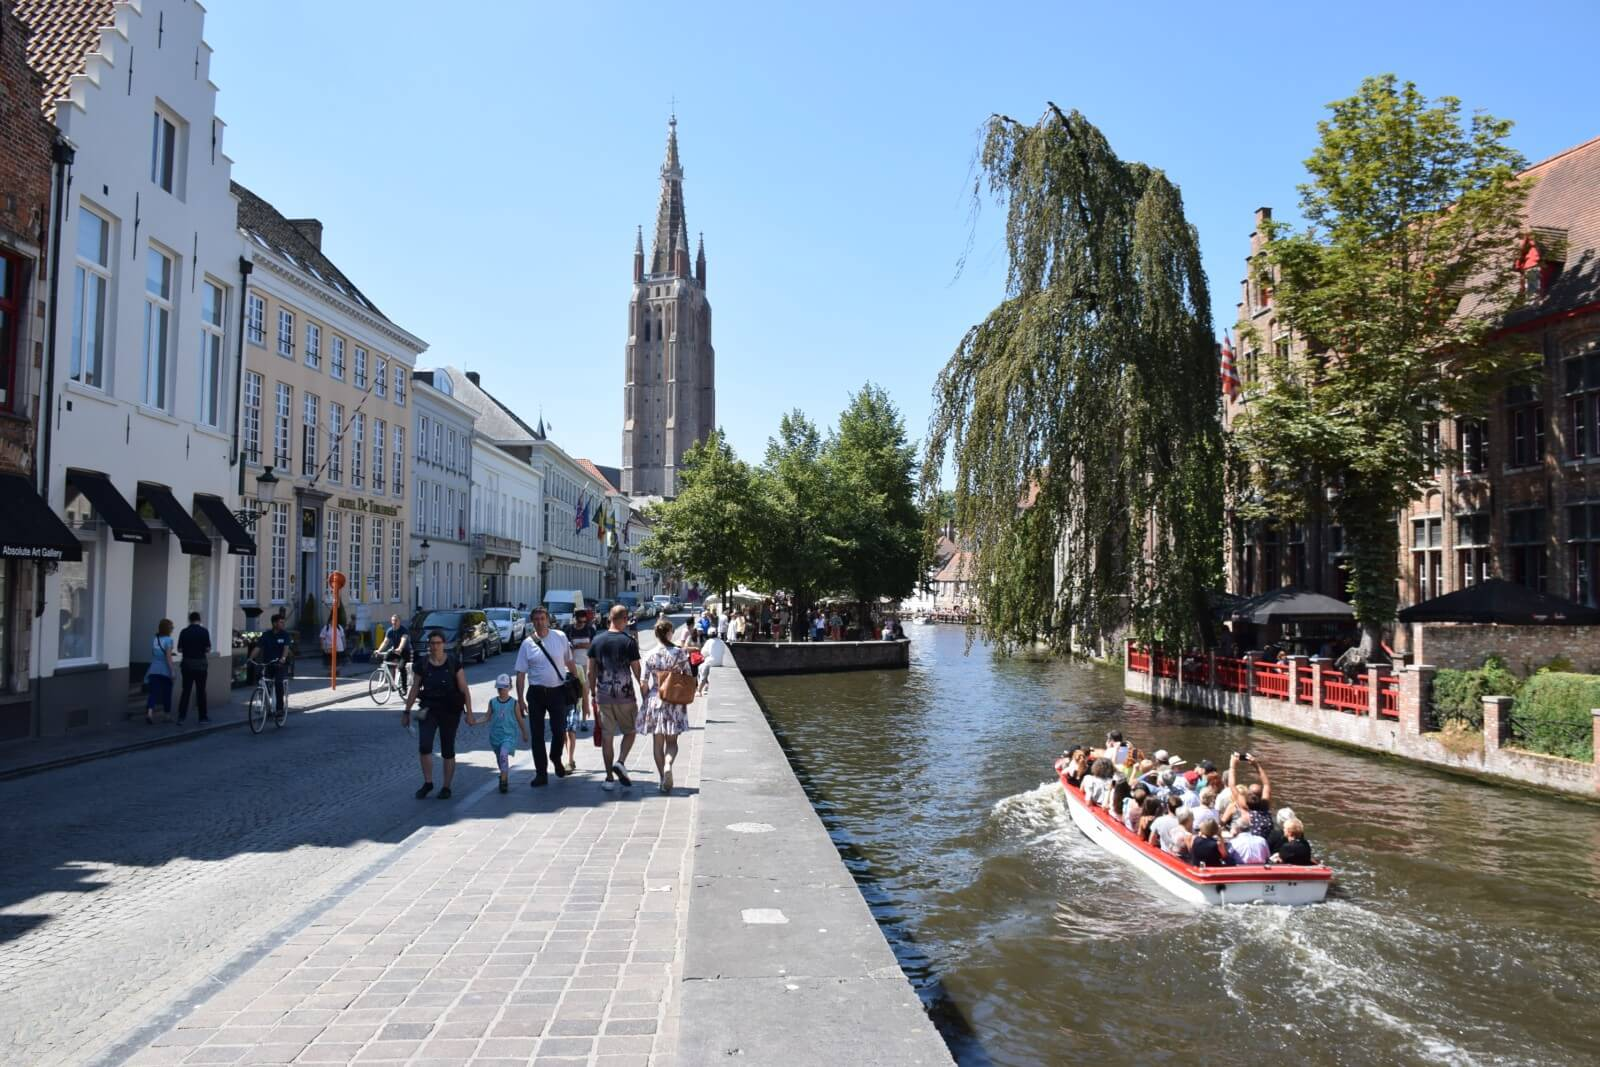 Walk along the canals of Bruges - Church of Our Lady, Bruges.